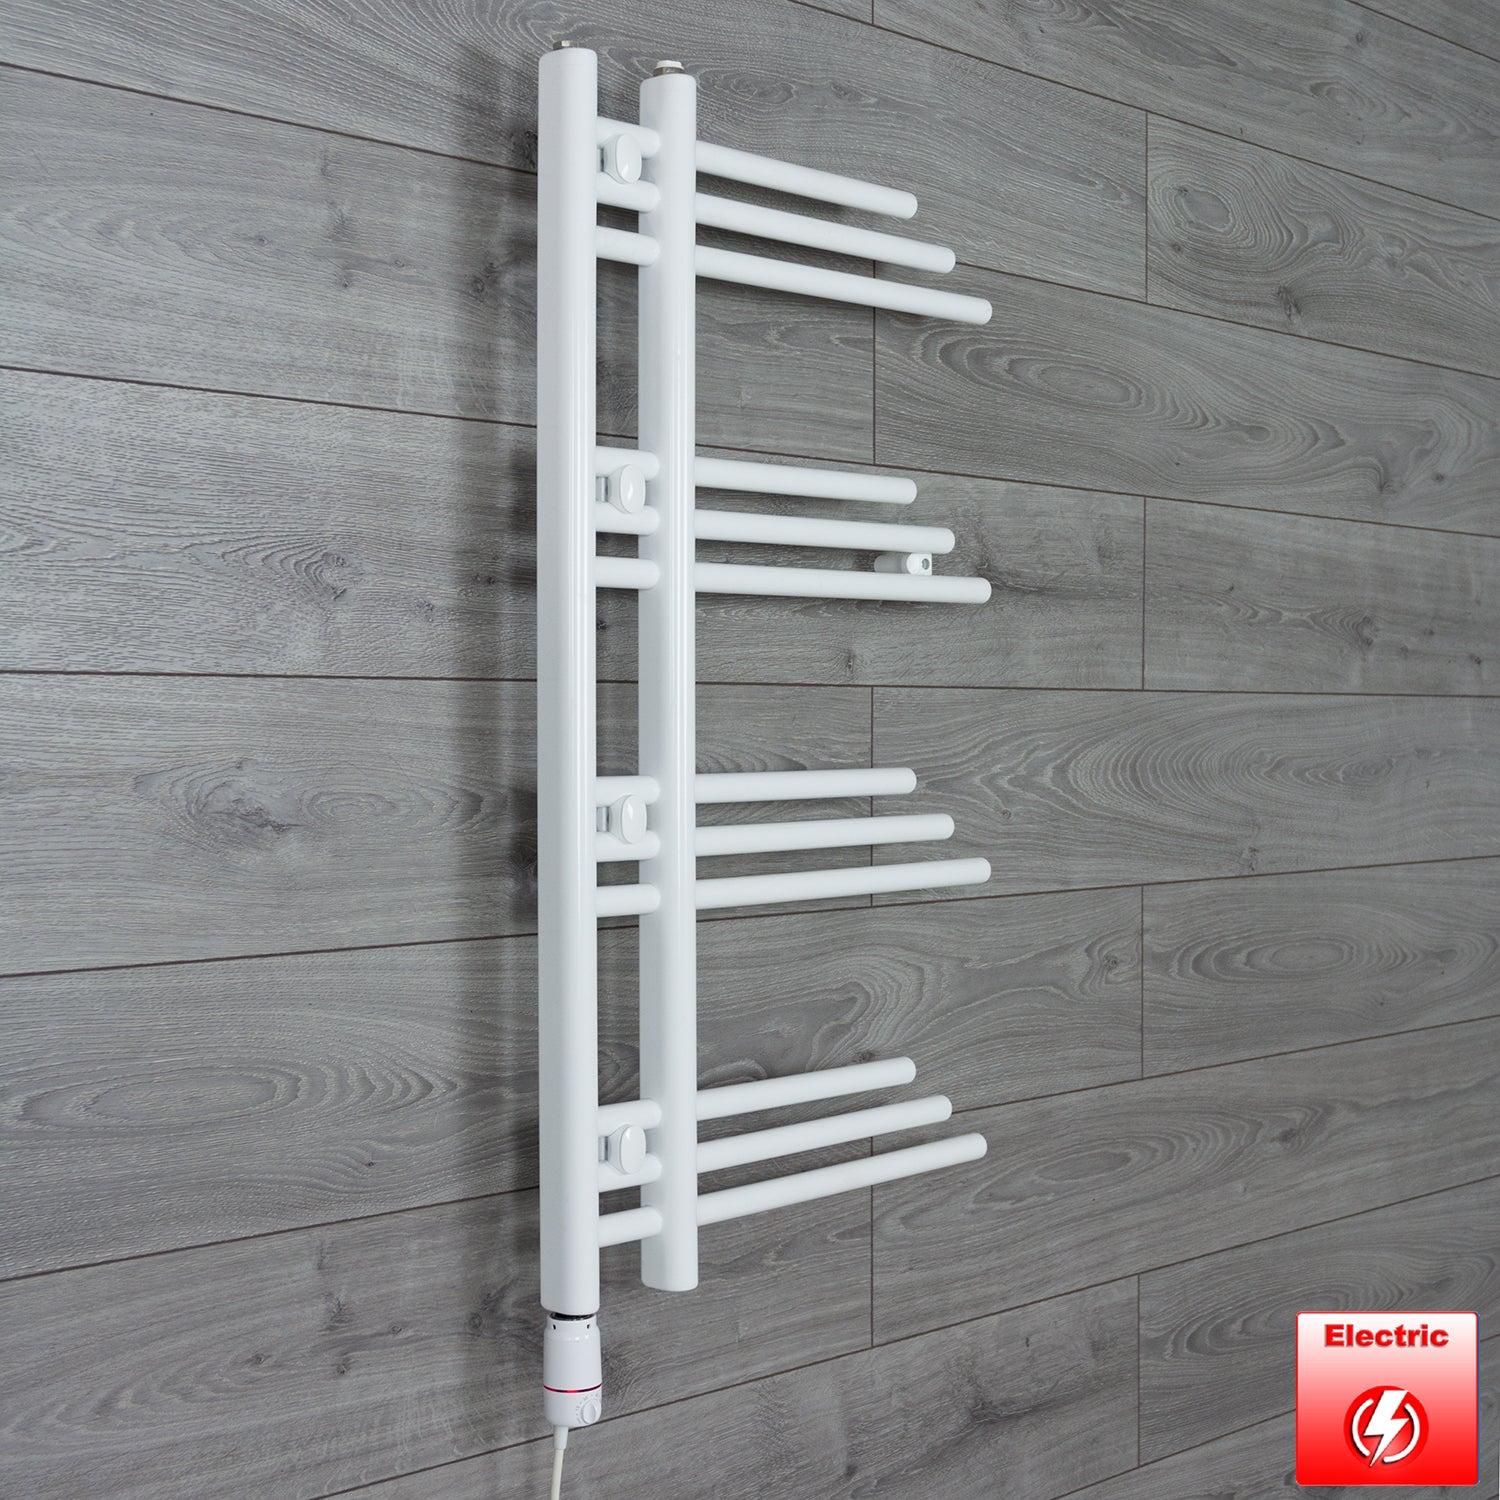 500mm Wide 900mm High Designer Flat White Heated Towel Rail Radiator Gas or Electric,Pre-Filled Thermostatic Element